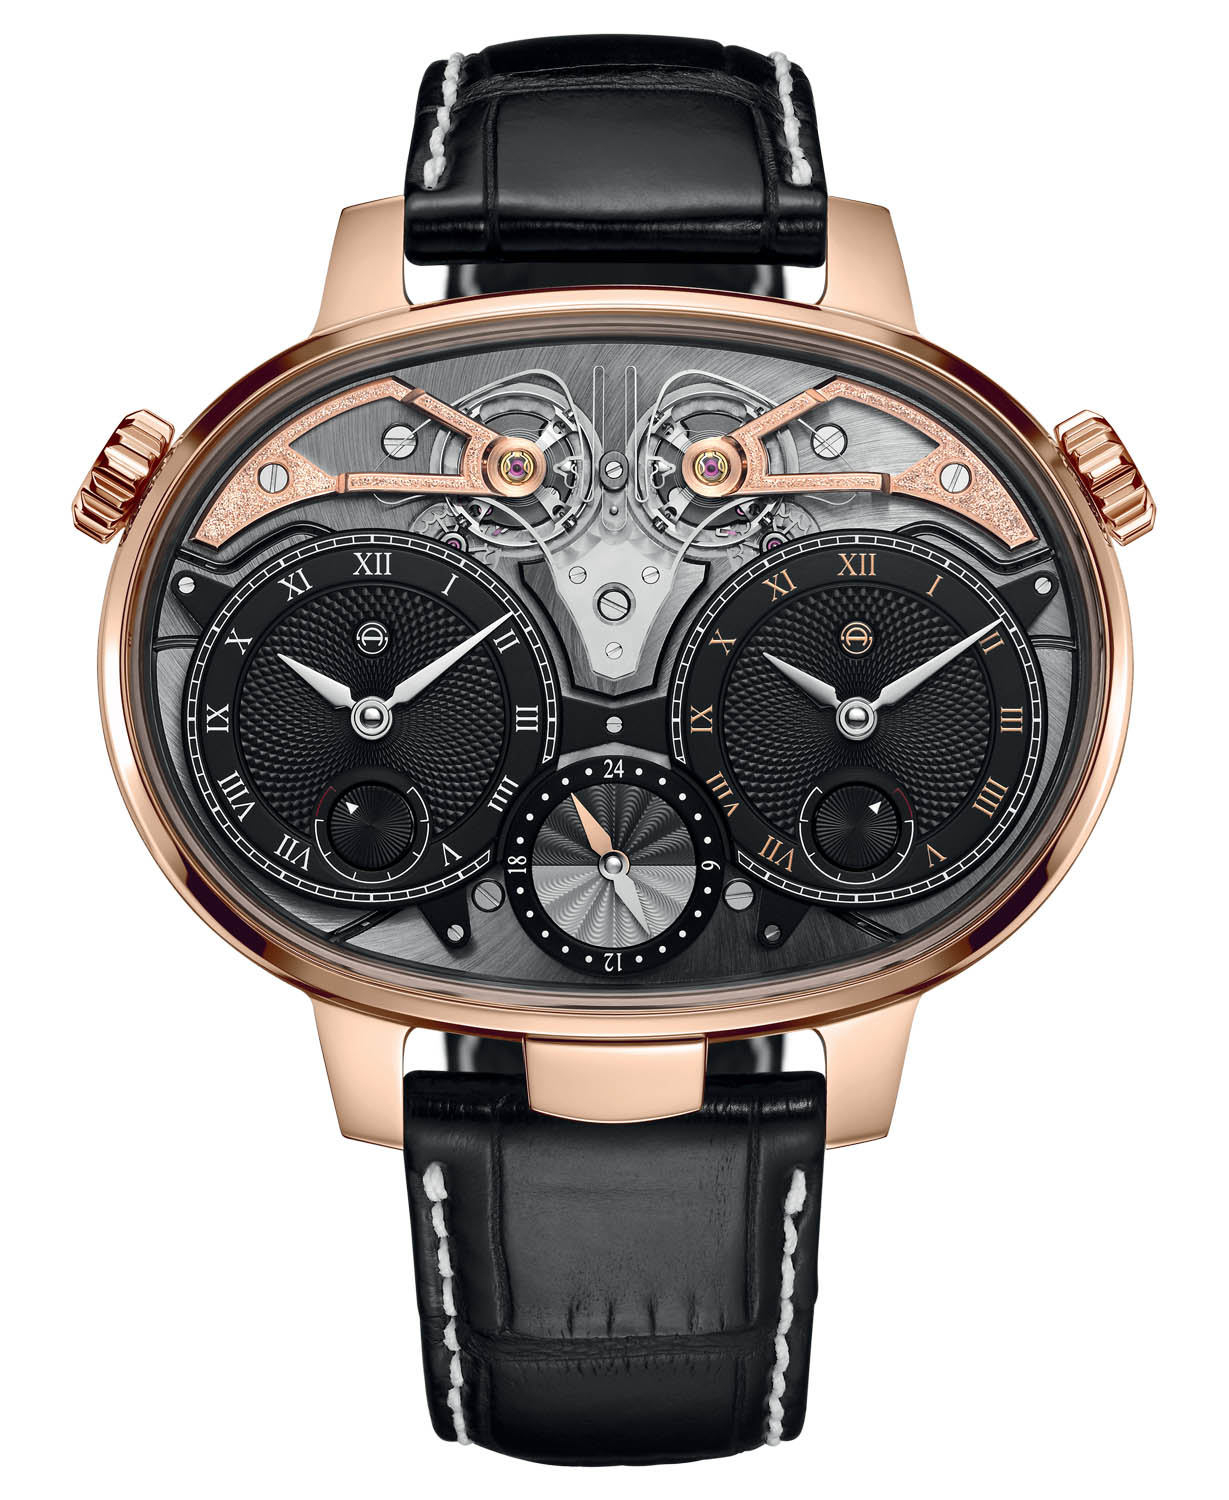 Pre-SIHH 2019 - Armin Strom GMT Resonance Rose and White Gold - 5